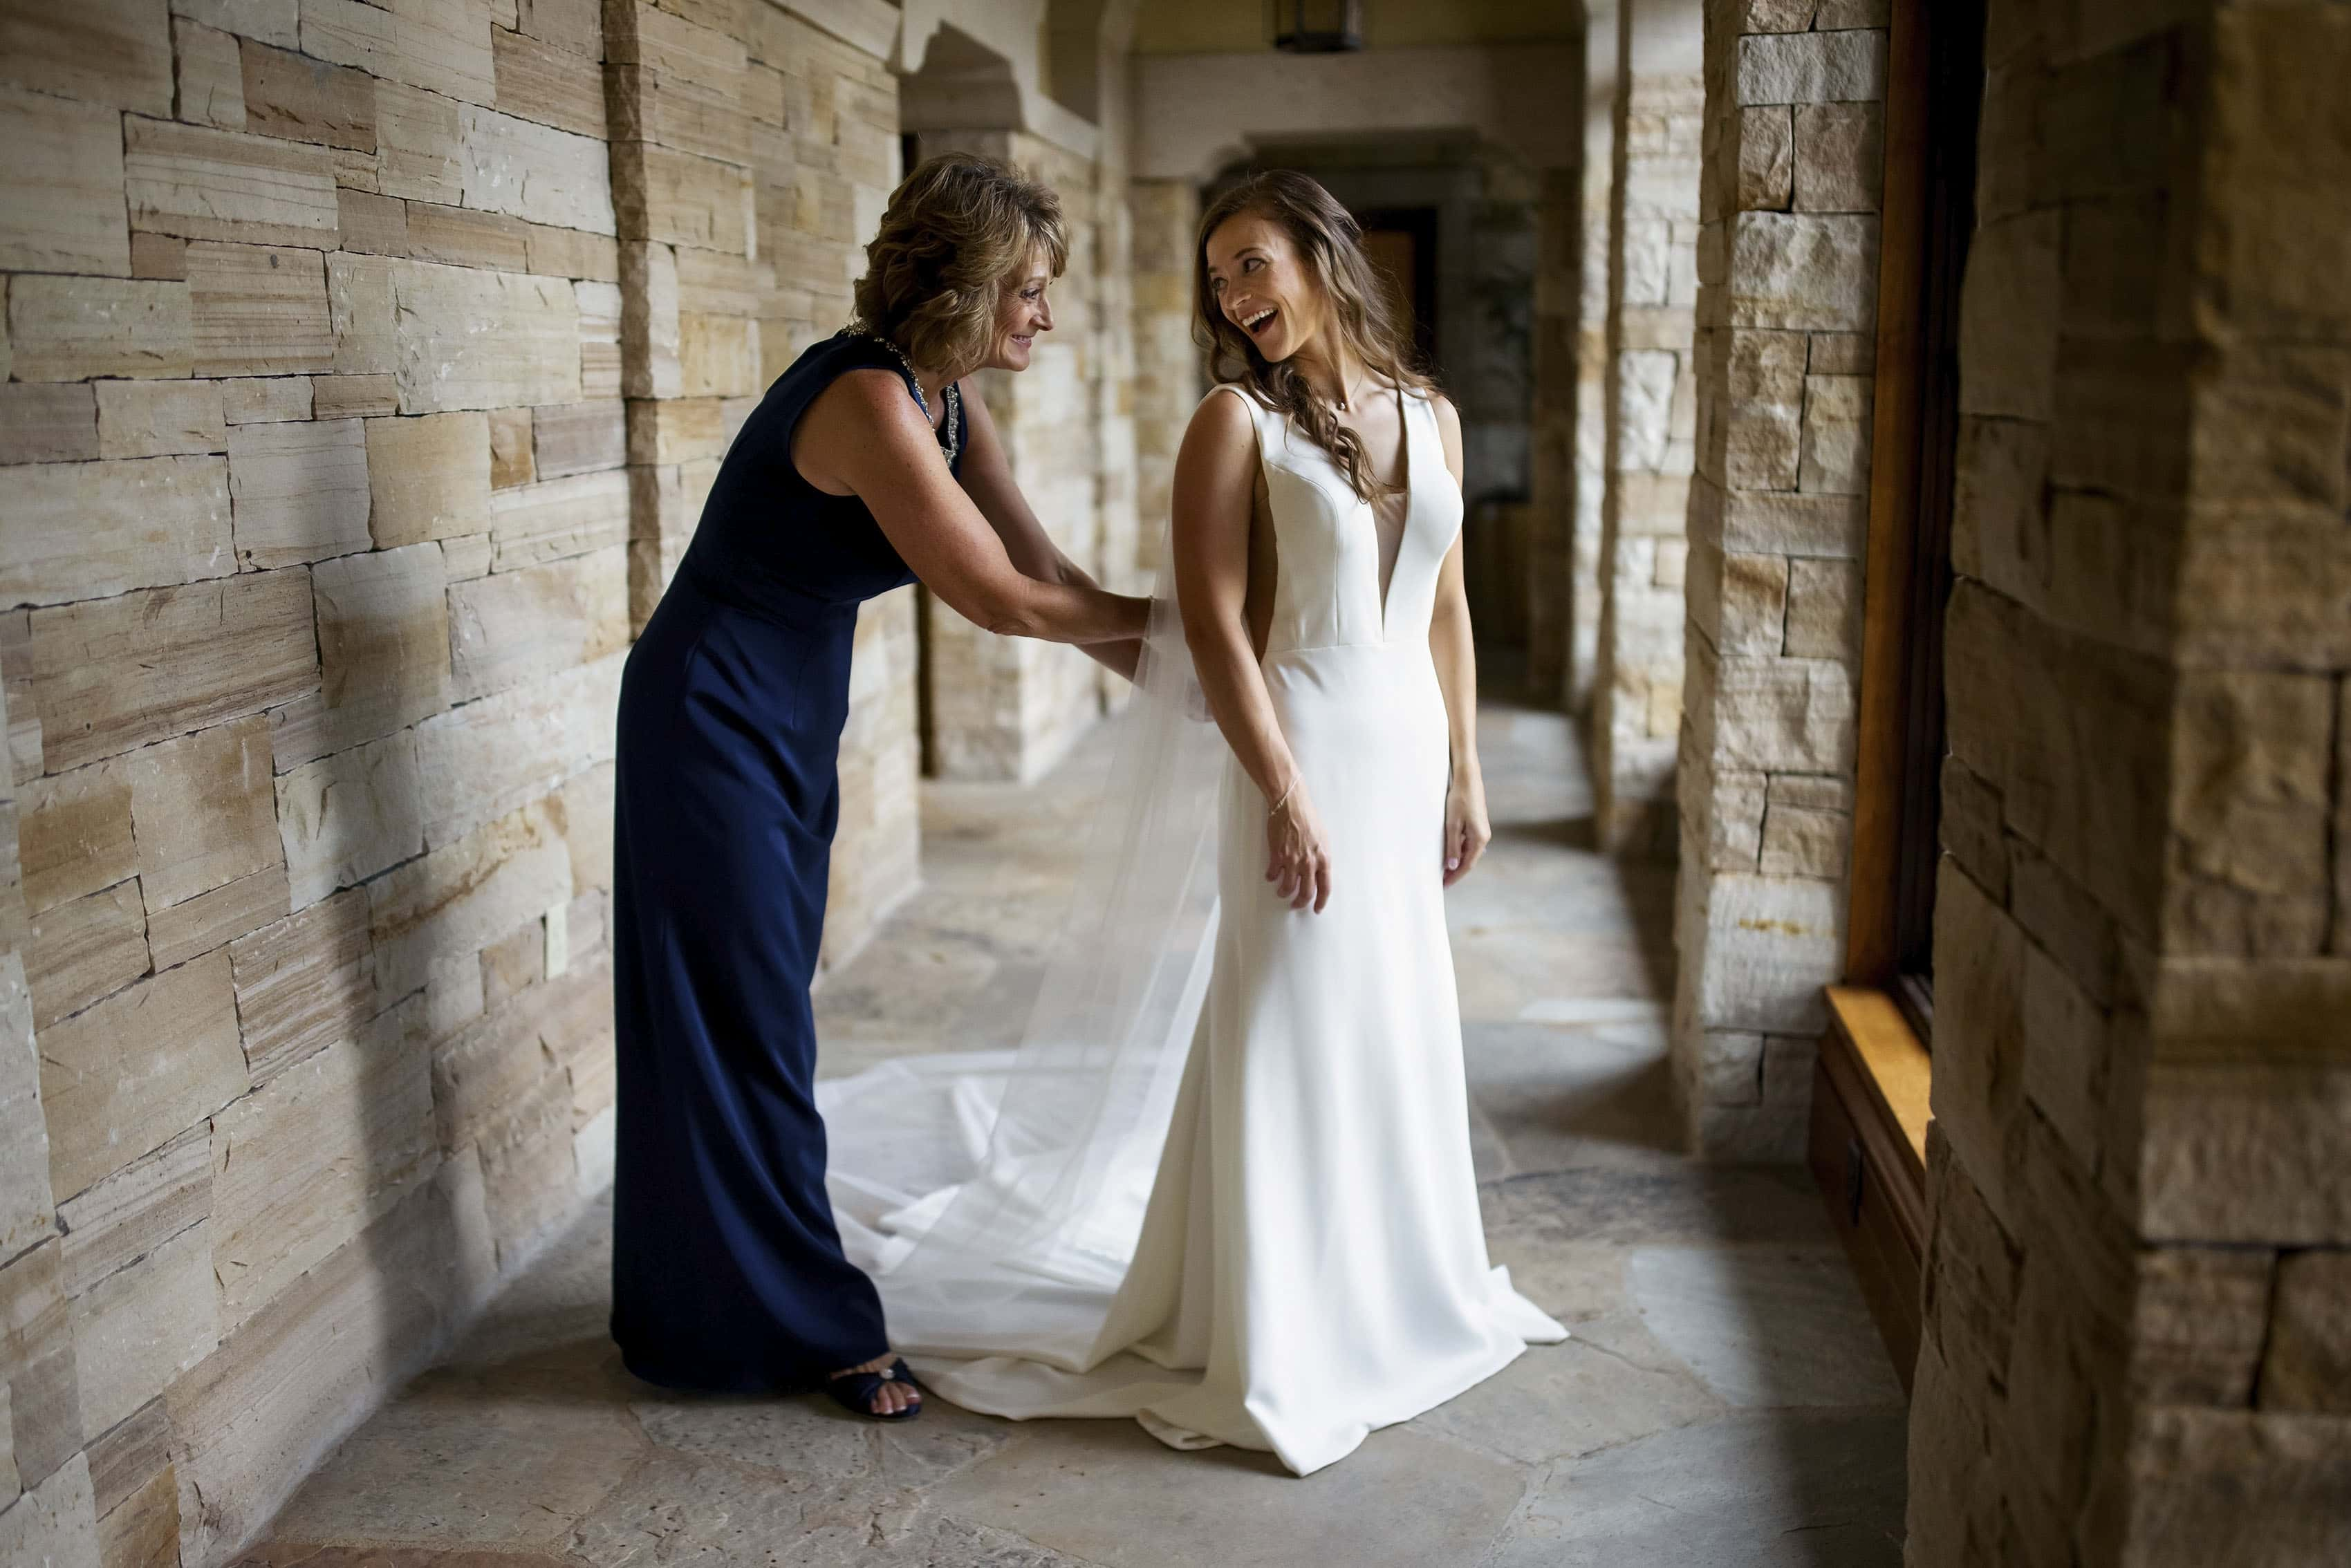 Casey puts on her wedding dress at Sanctuary Golf Course